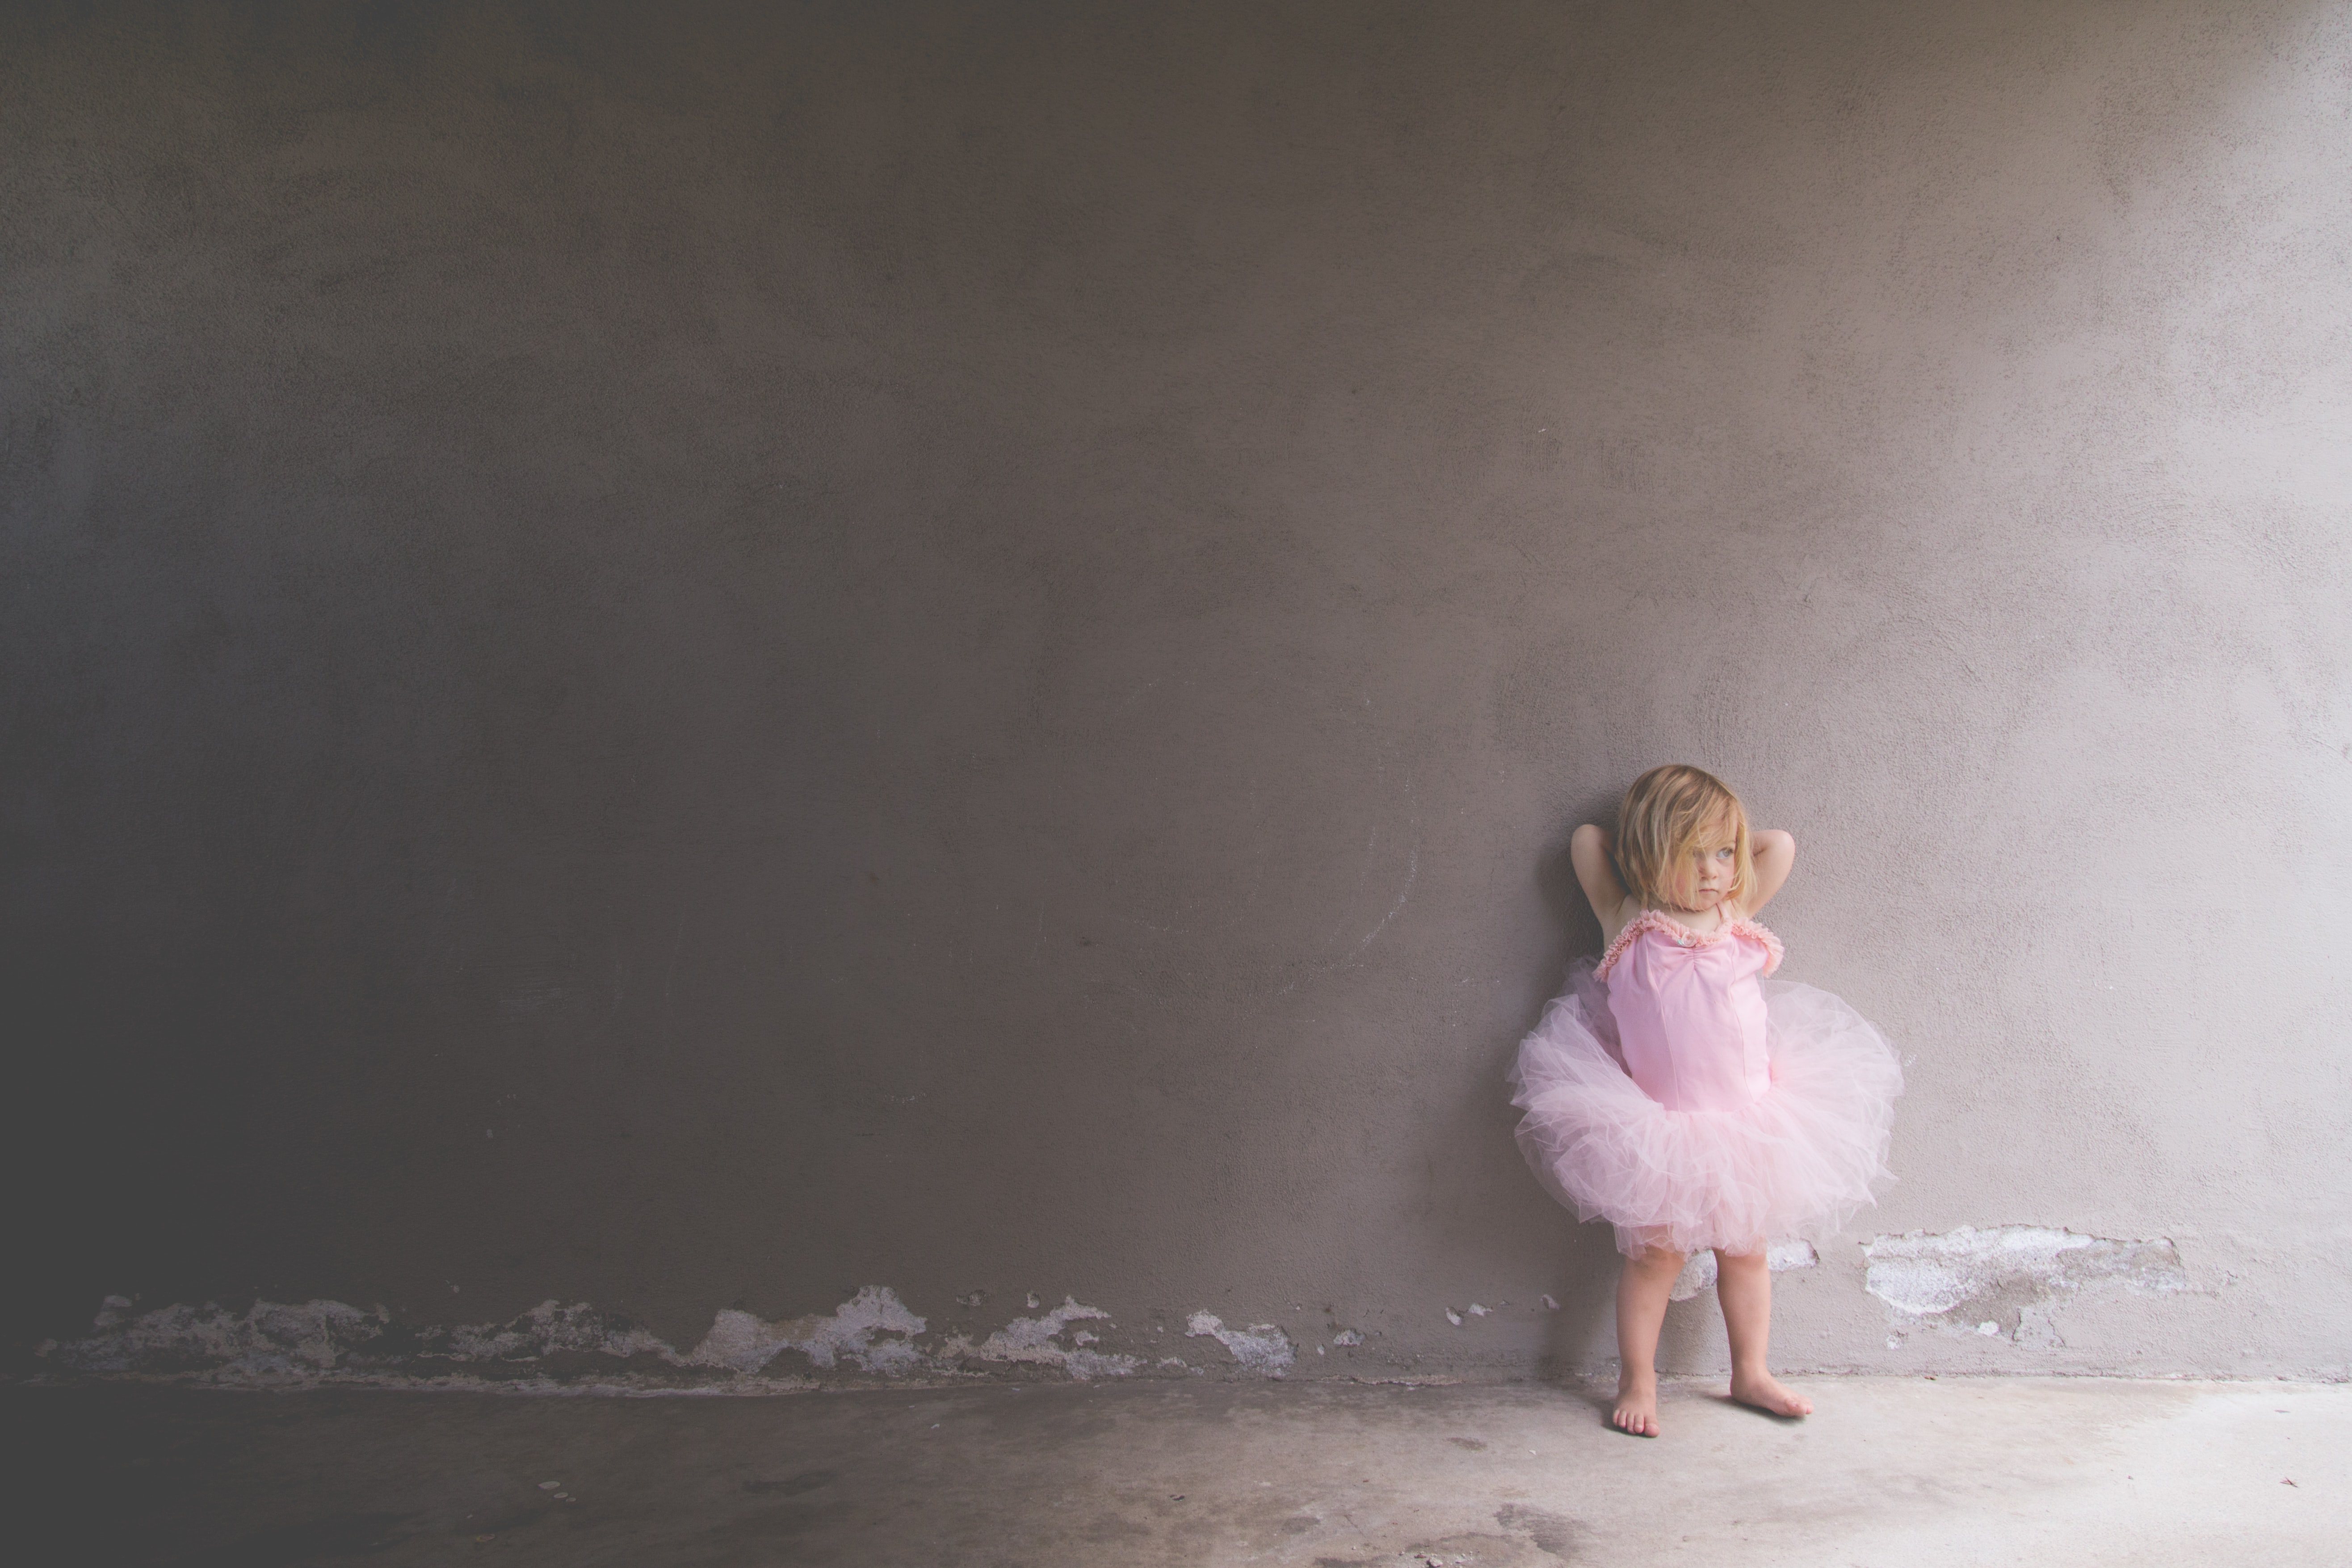 A shadow falls on a child wearing a pink leotard and tutu, leaning against a wall